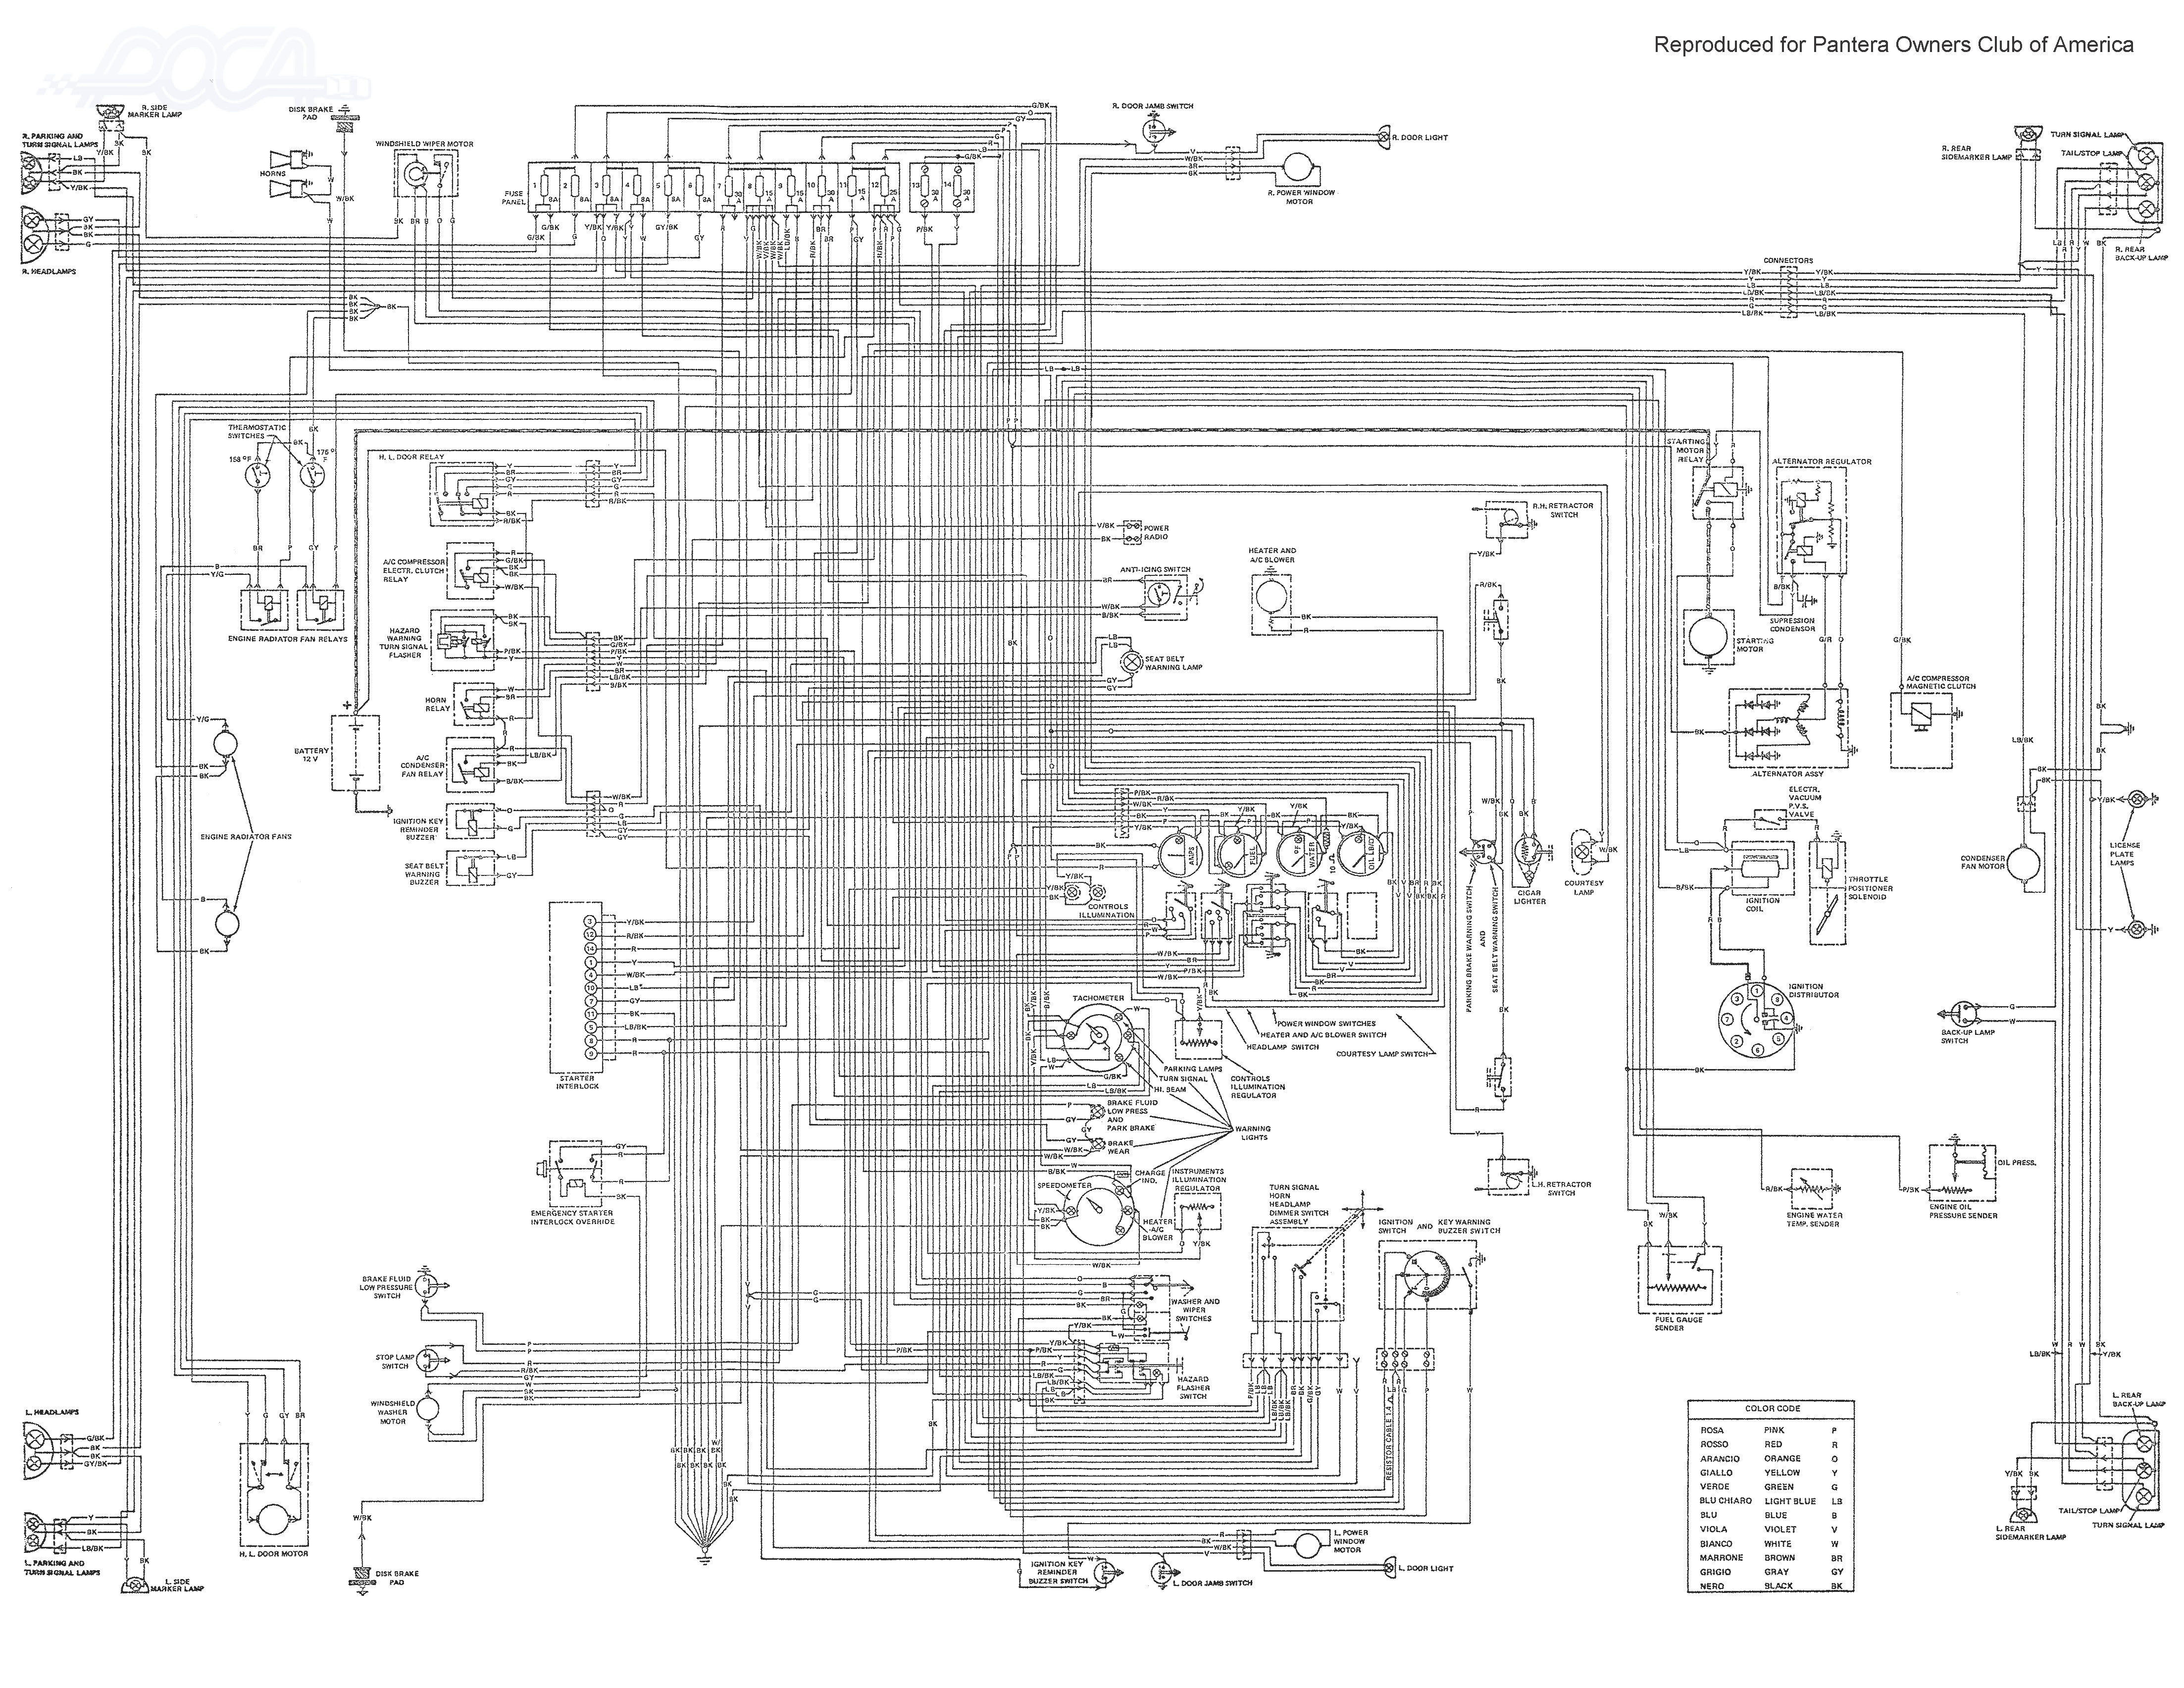 wiring diagrams for kenworth trucks the wiring diagram kenworth starter wiring diagram kenworth wiring diagrams wiring diagram